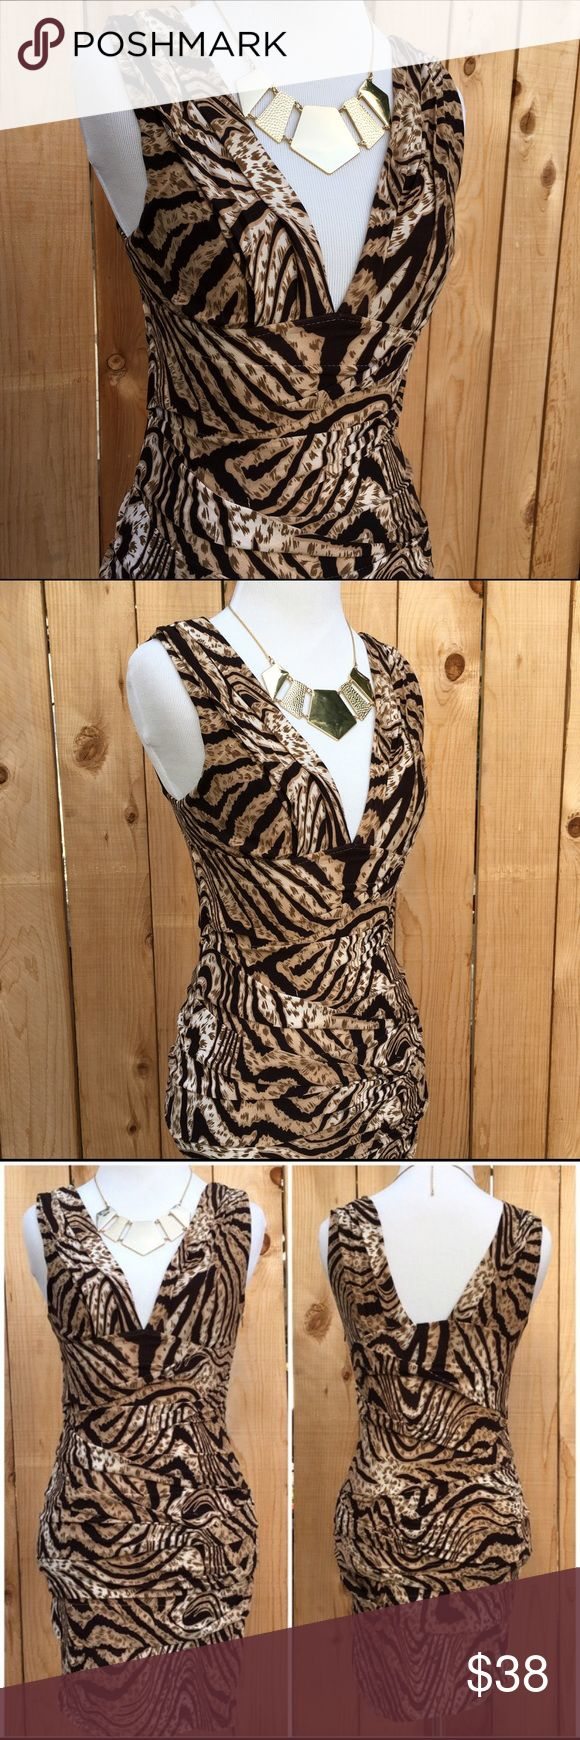 """🆕 Animal Print Body Con Dress❄️ Sexy low v-neck animal print is a mix of browns & tan with a 9"""" side zipper. Measurements are 13.5"""" pit to pit & from shoulder seam to bottom of dress is 31.5"""" long. Waist is 12.25"""" but has stretch to it. Content is 95% Polyester & 5% Spandex. In excellent new condition. NWT  Also visit @infinitelyposh for S, M & L sizes. The Hanger Dresses Mini"""